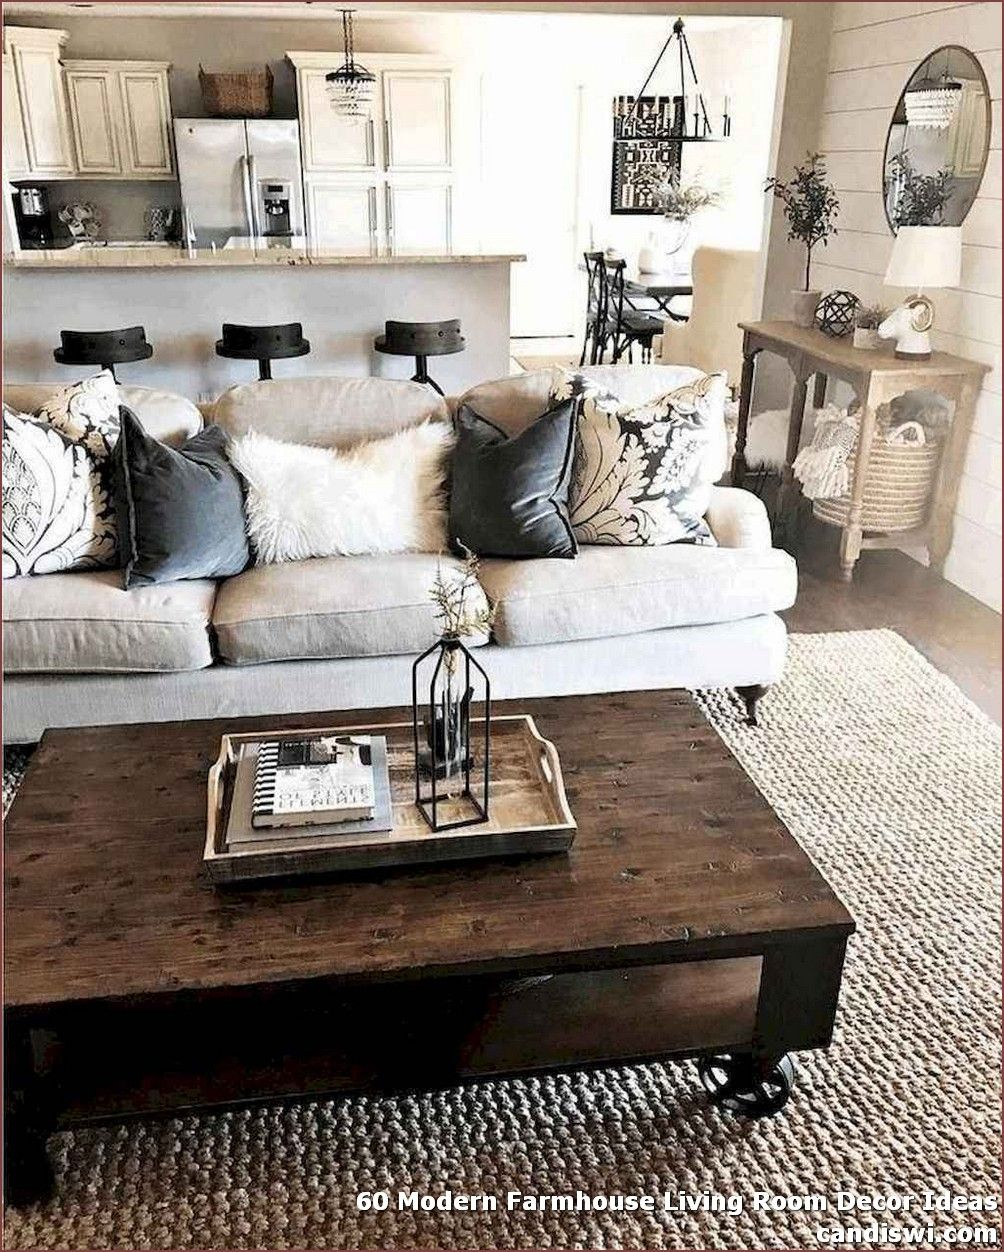 60 Modern Farmhouse Living Room Decor Ideas Modern Farmhouse Living Room Decor Farmhouse Decor Living Room Farmhouse Style Living Room